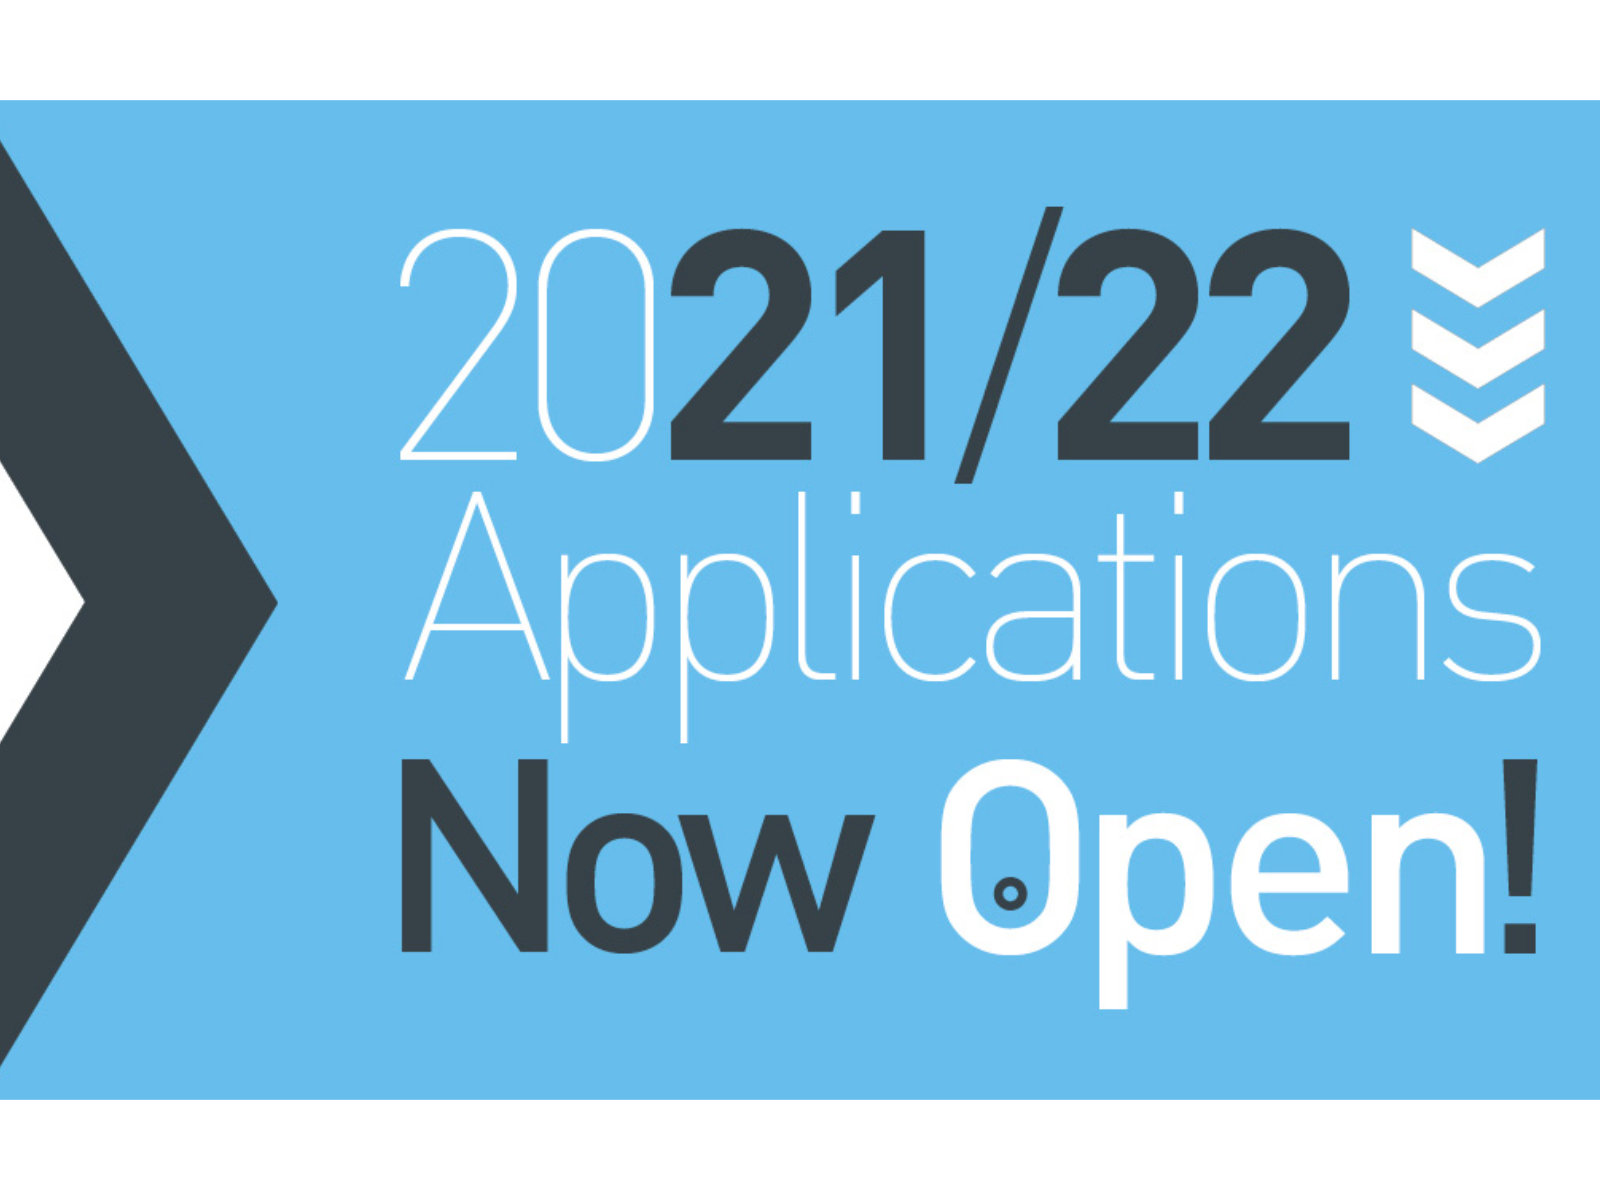 2021-21 Applications now open